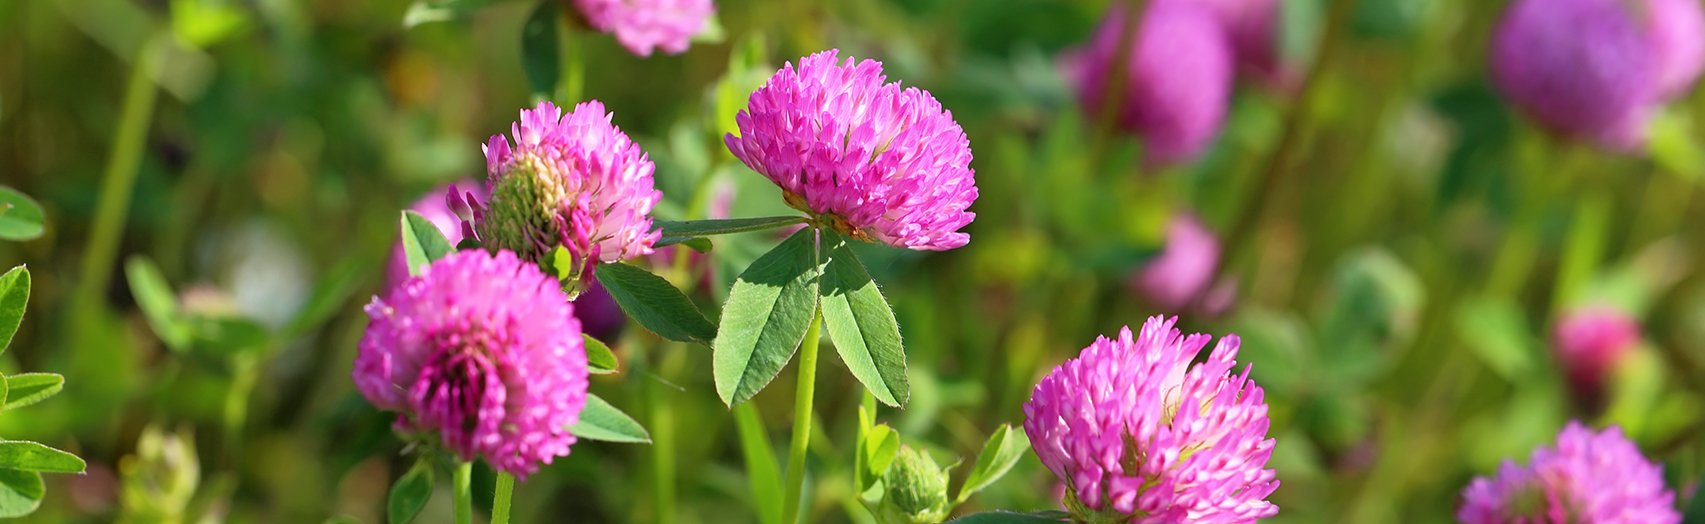 Thickets of a blossoming clover